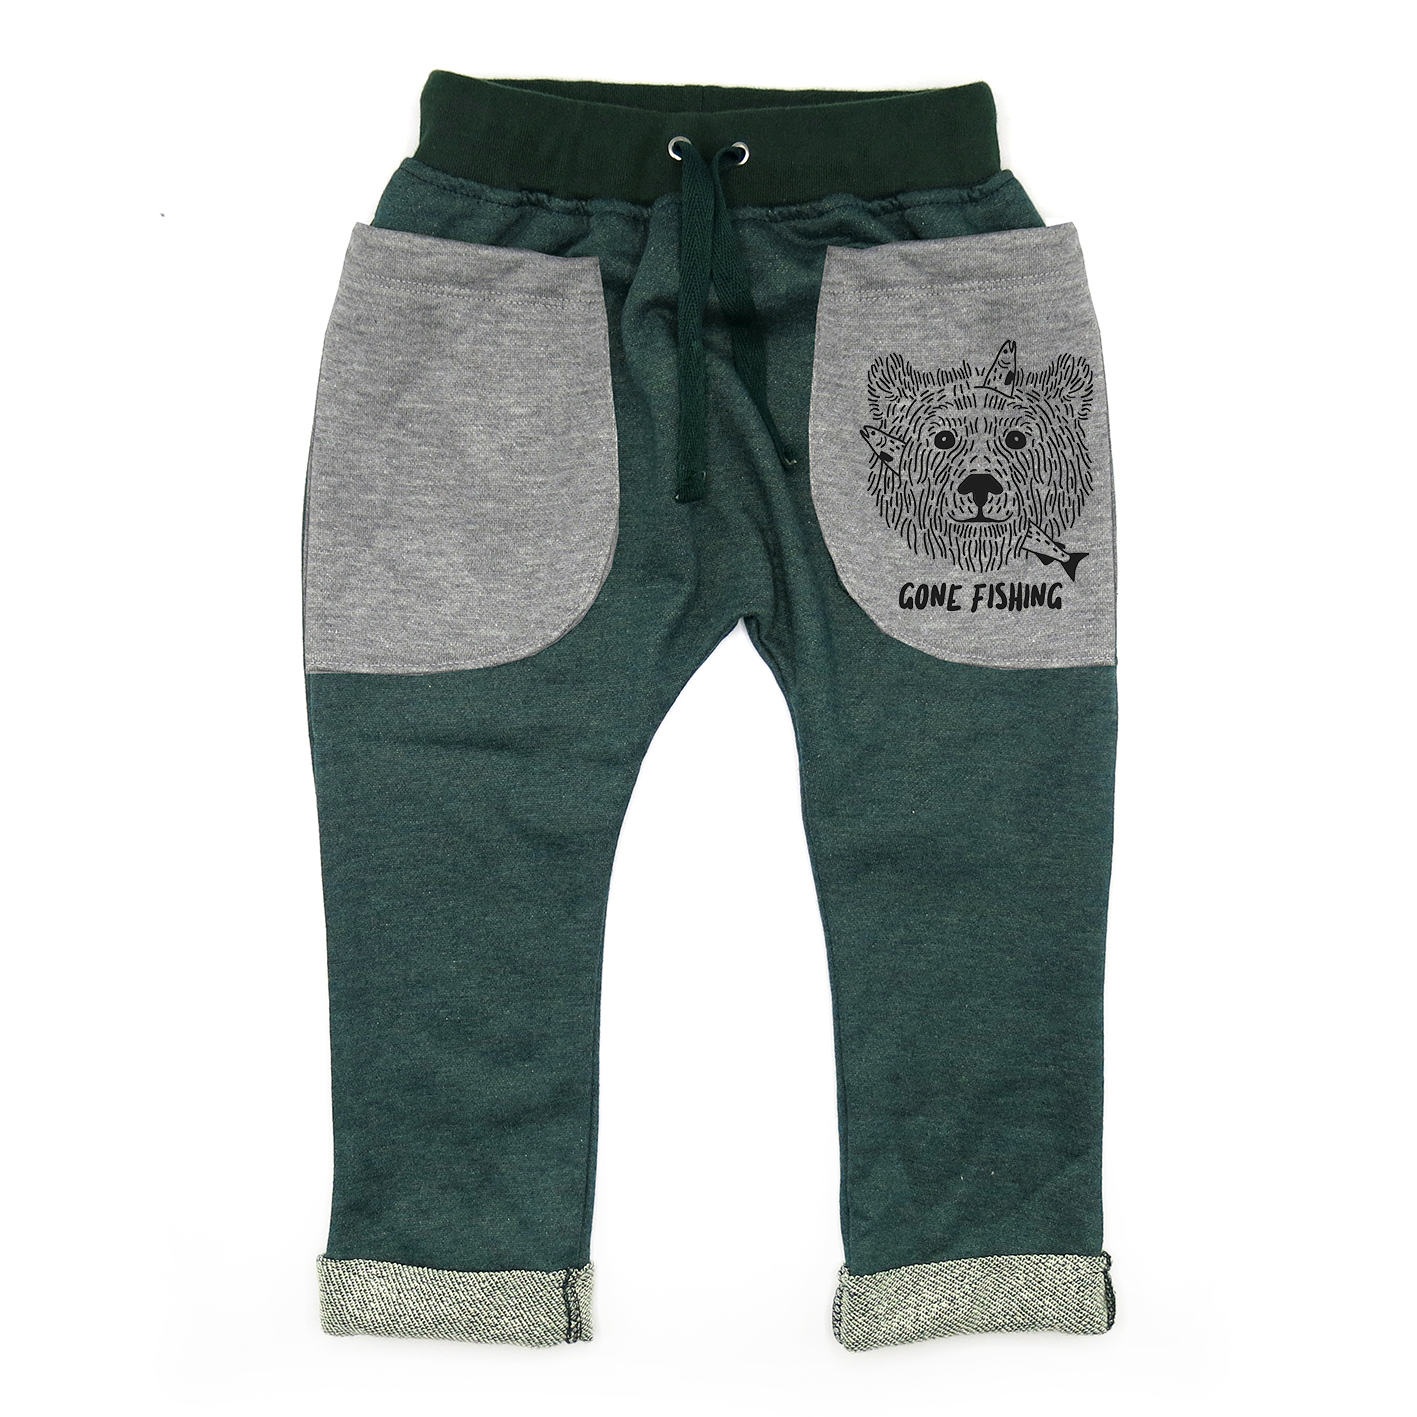 BABY&KIDS LP05208 [D] 0M.-7Y. GONE FISHING ROLL UP SLOUCH PANTS